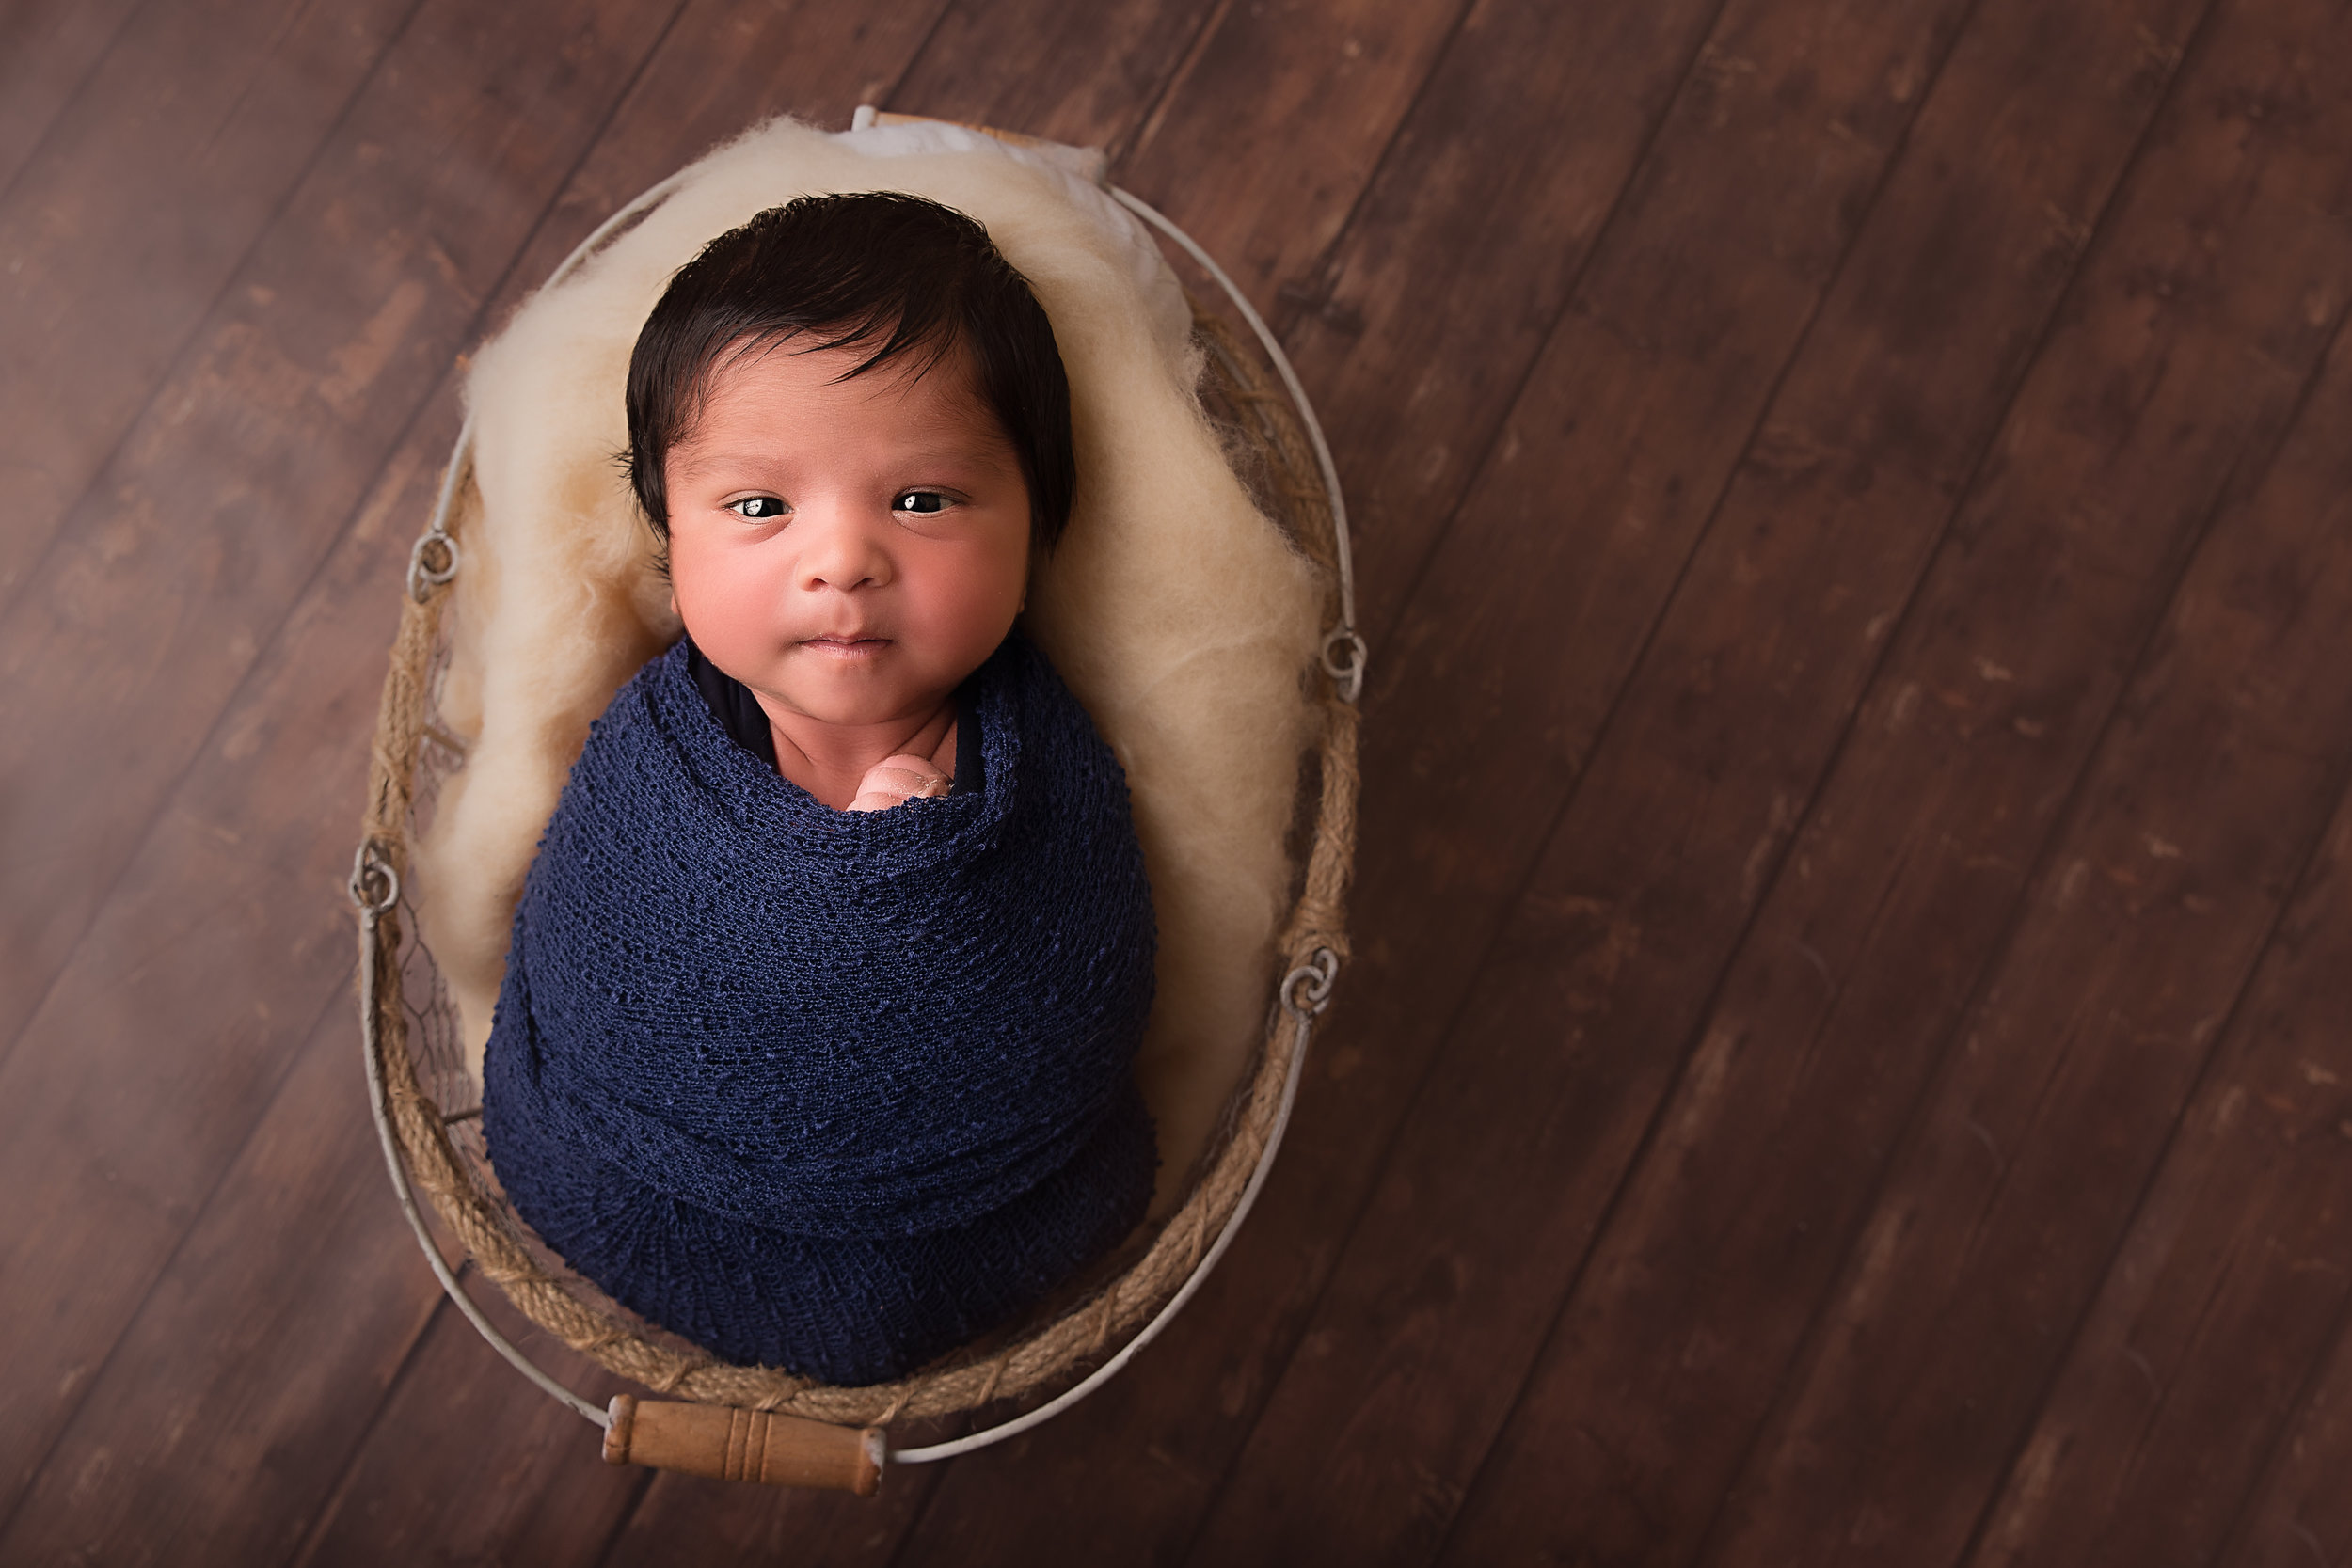 charlotte newborn photographer keeping baby safe during session.jpg